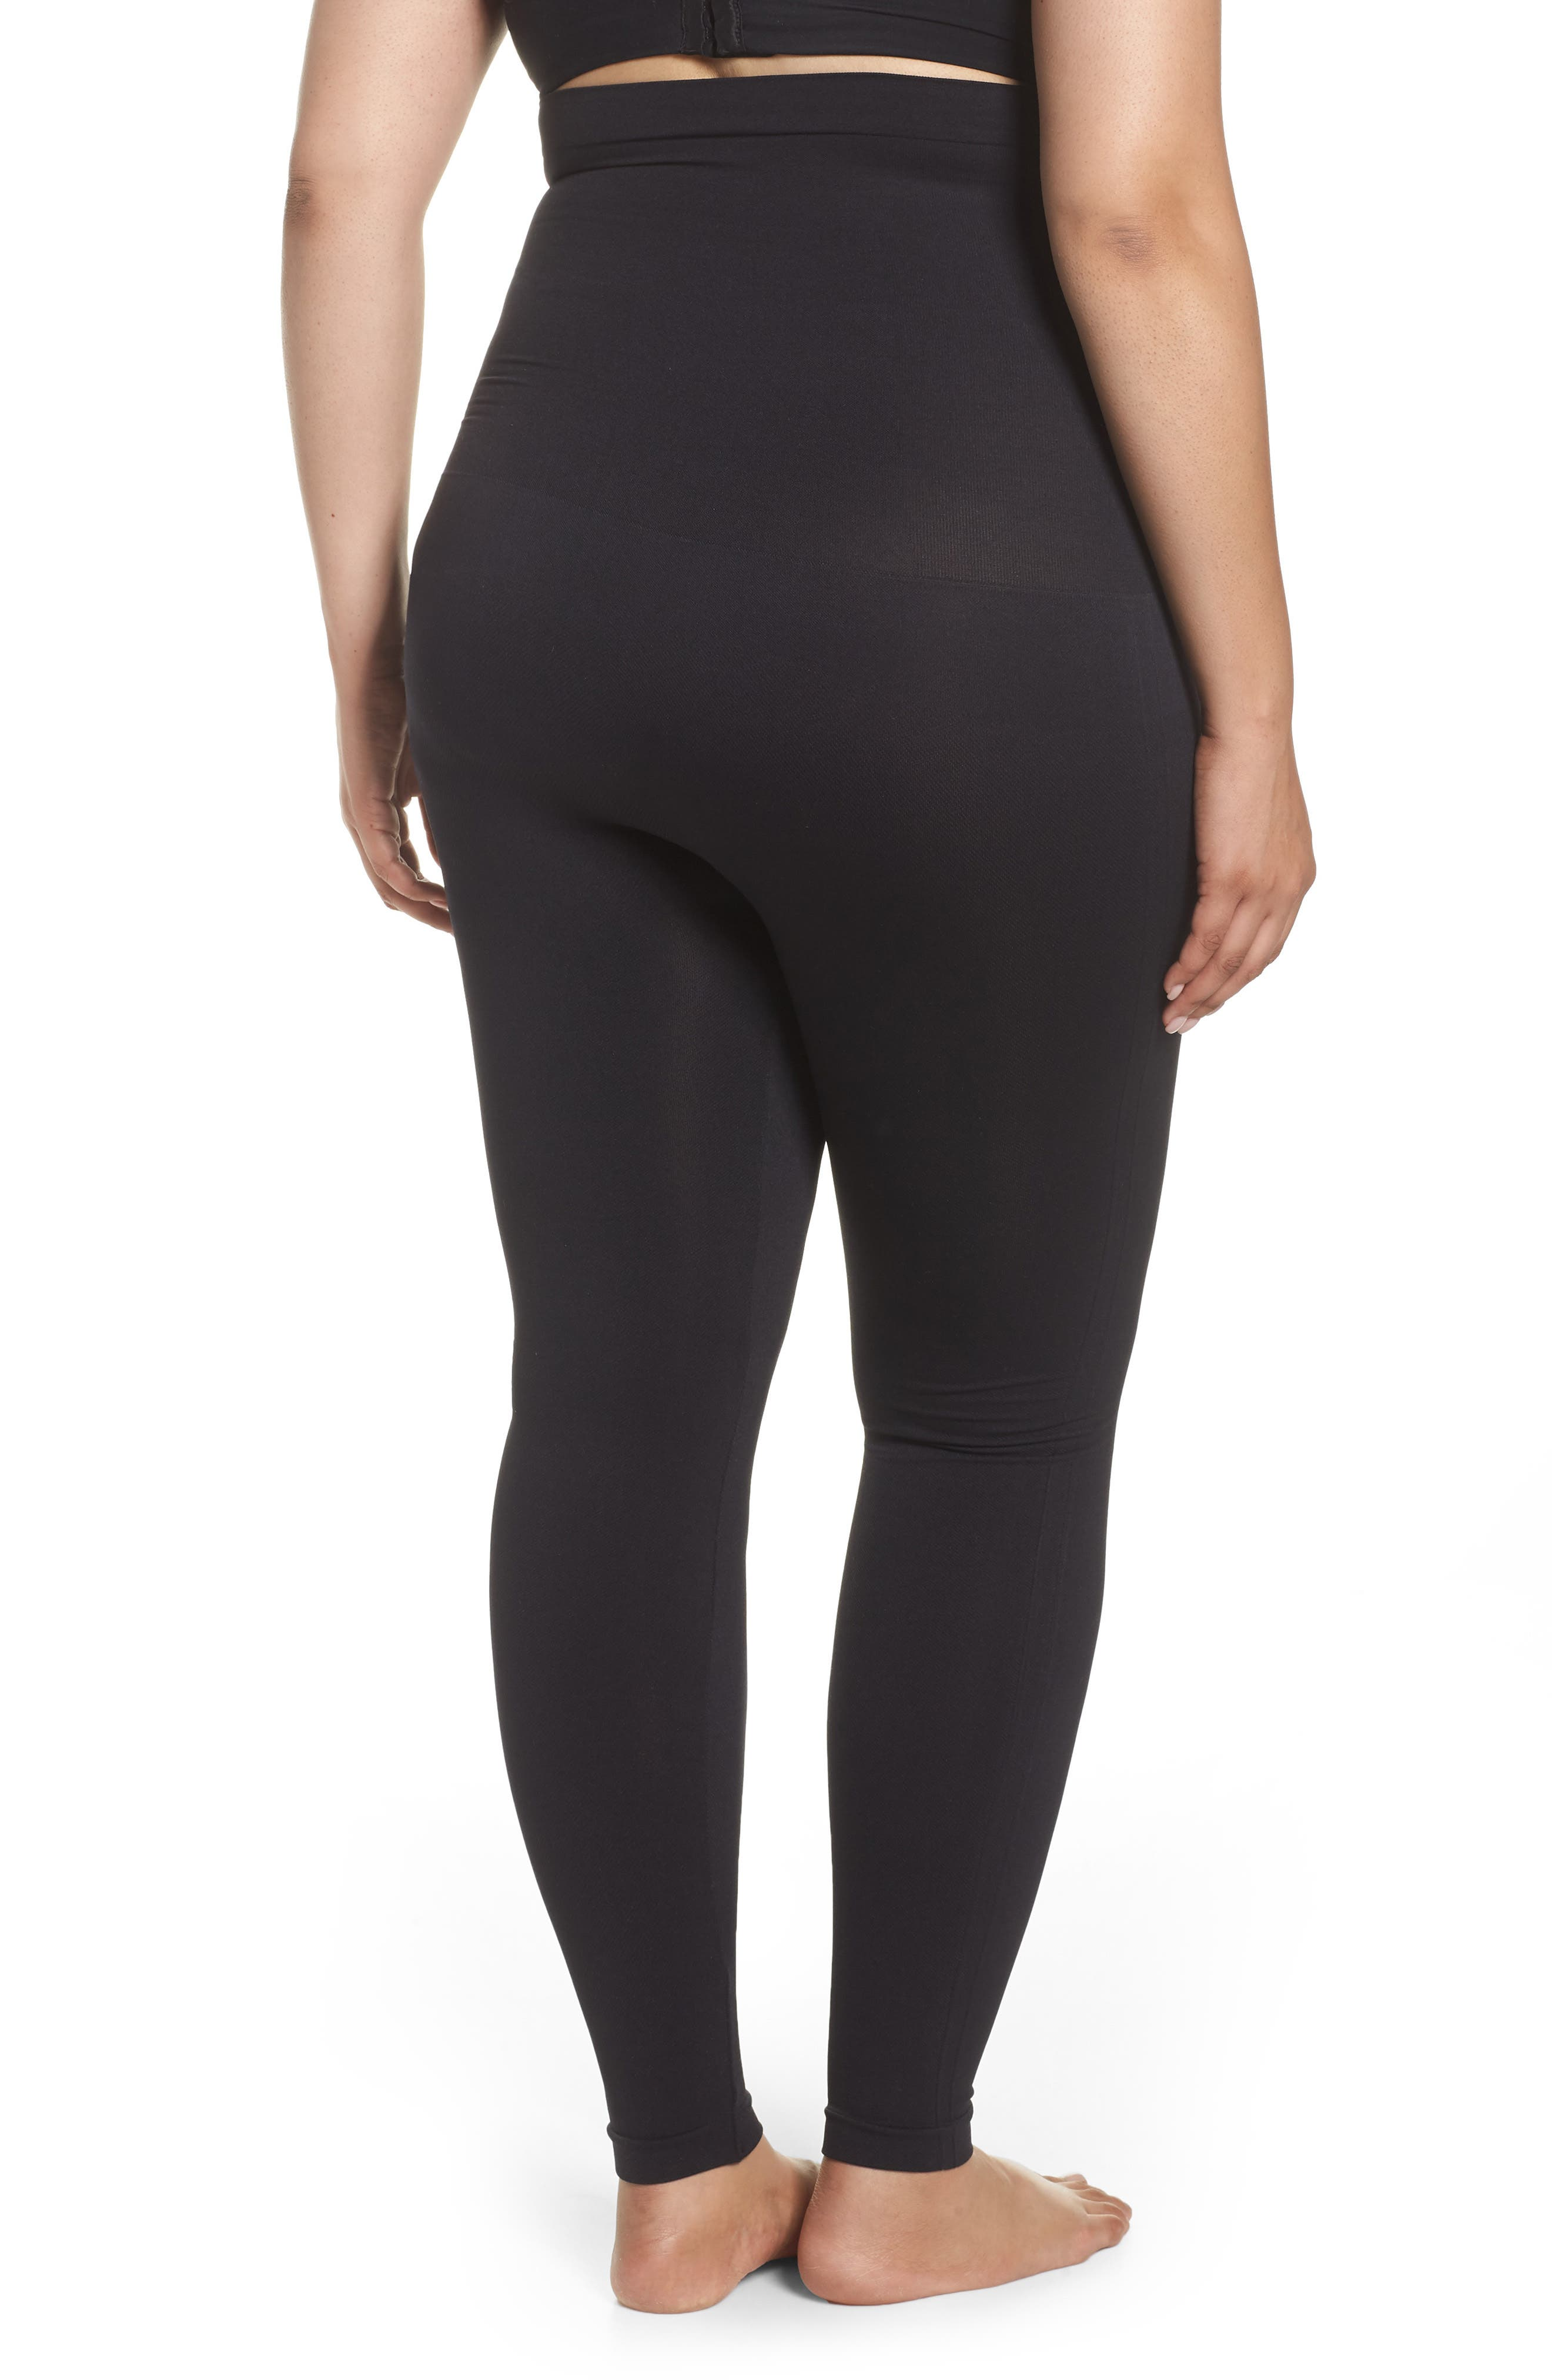 Look At Me Now Seamless Leggings,                             Alternate thumbnail 2, color,                             VERY BLACK